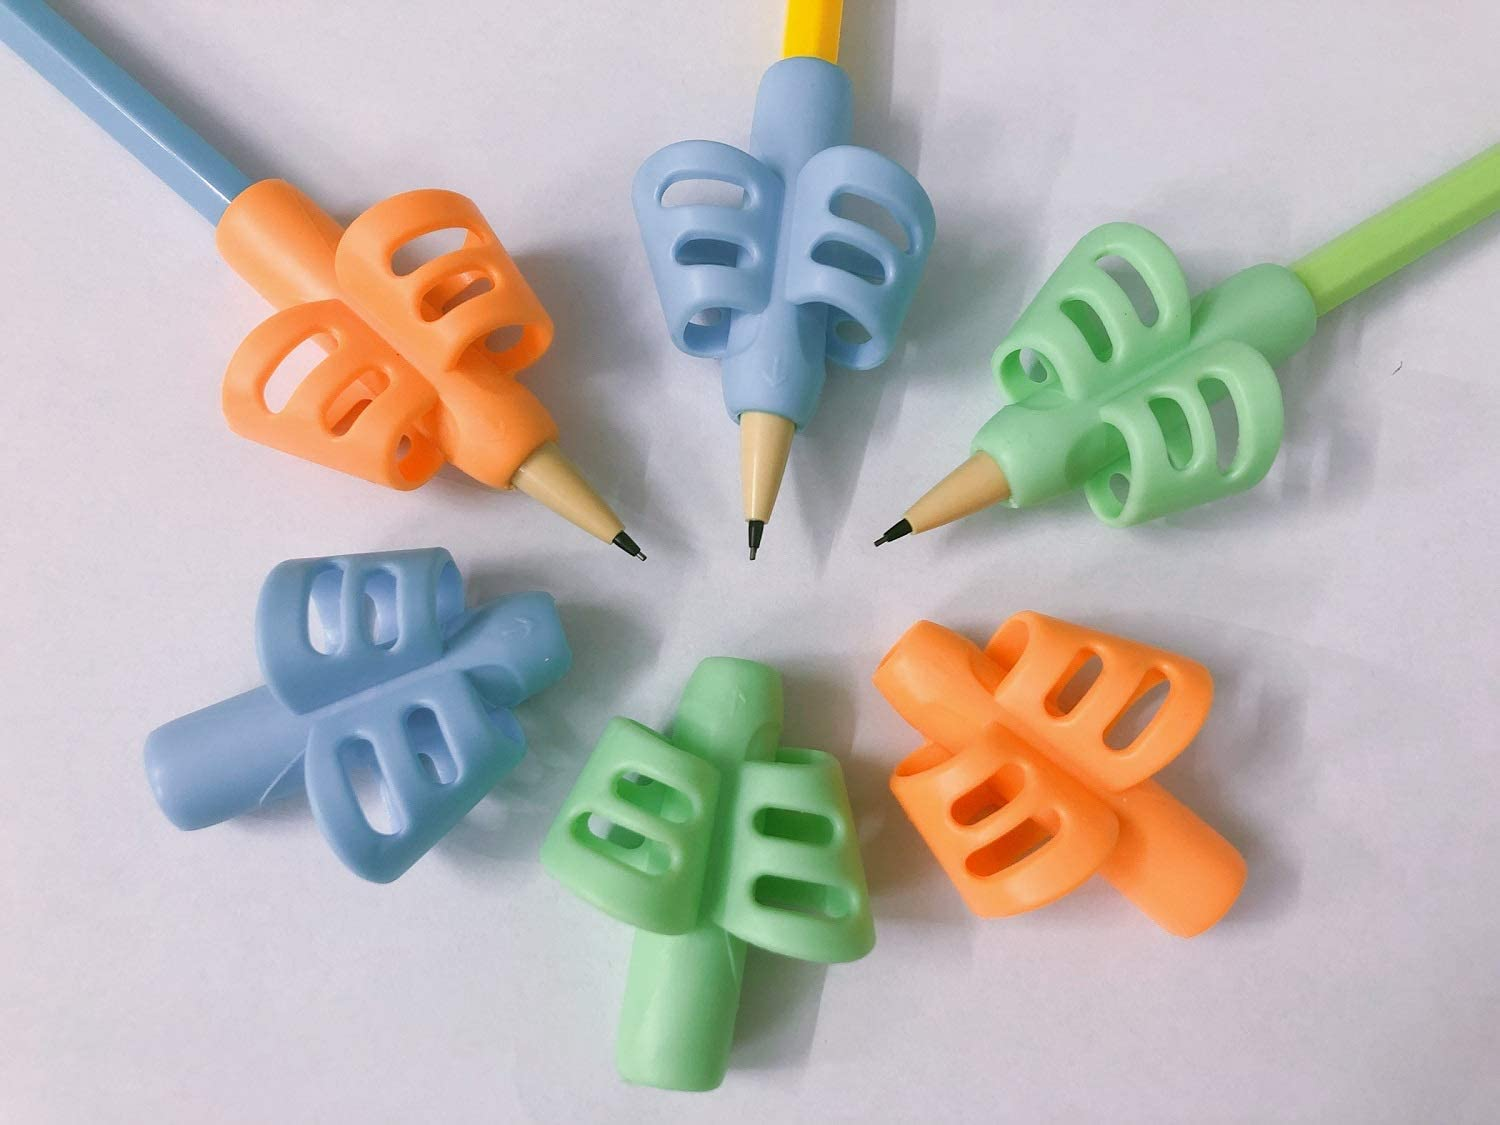 N/C Pencil Grip 3Pcs Eco-Friendly Soft Pencil Grips Help Children Holding Pen Posture Corrector Let Children Learn The Correct Way To Hold The Pen Special Education Supplies For School-Age Children